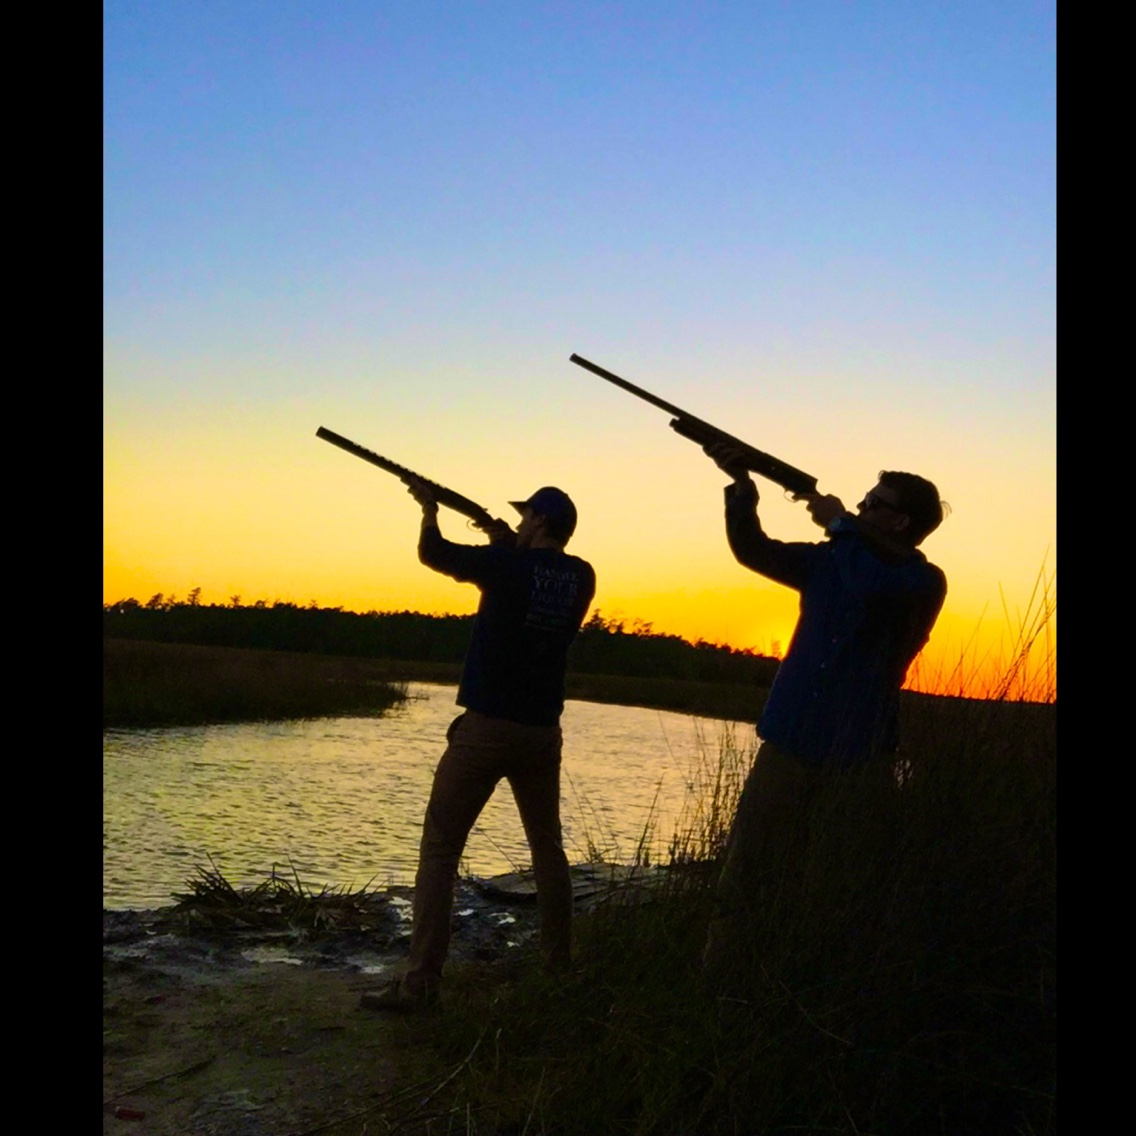 A picture of two hunders pointing their guns up towards the sky.